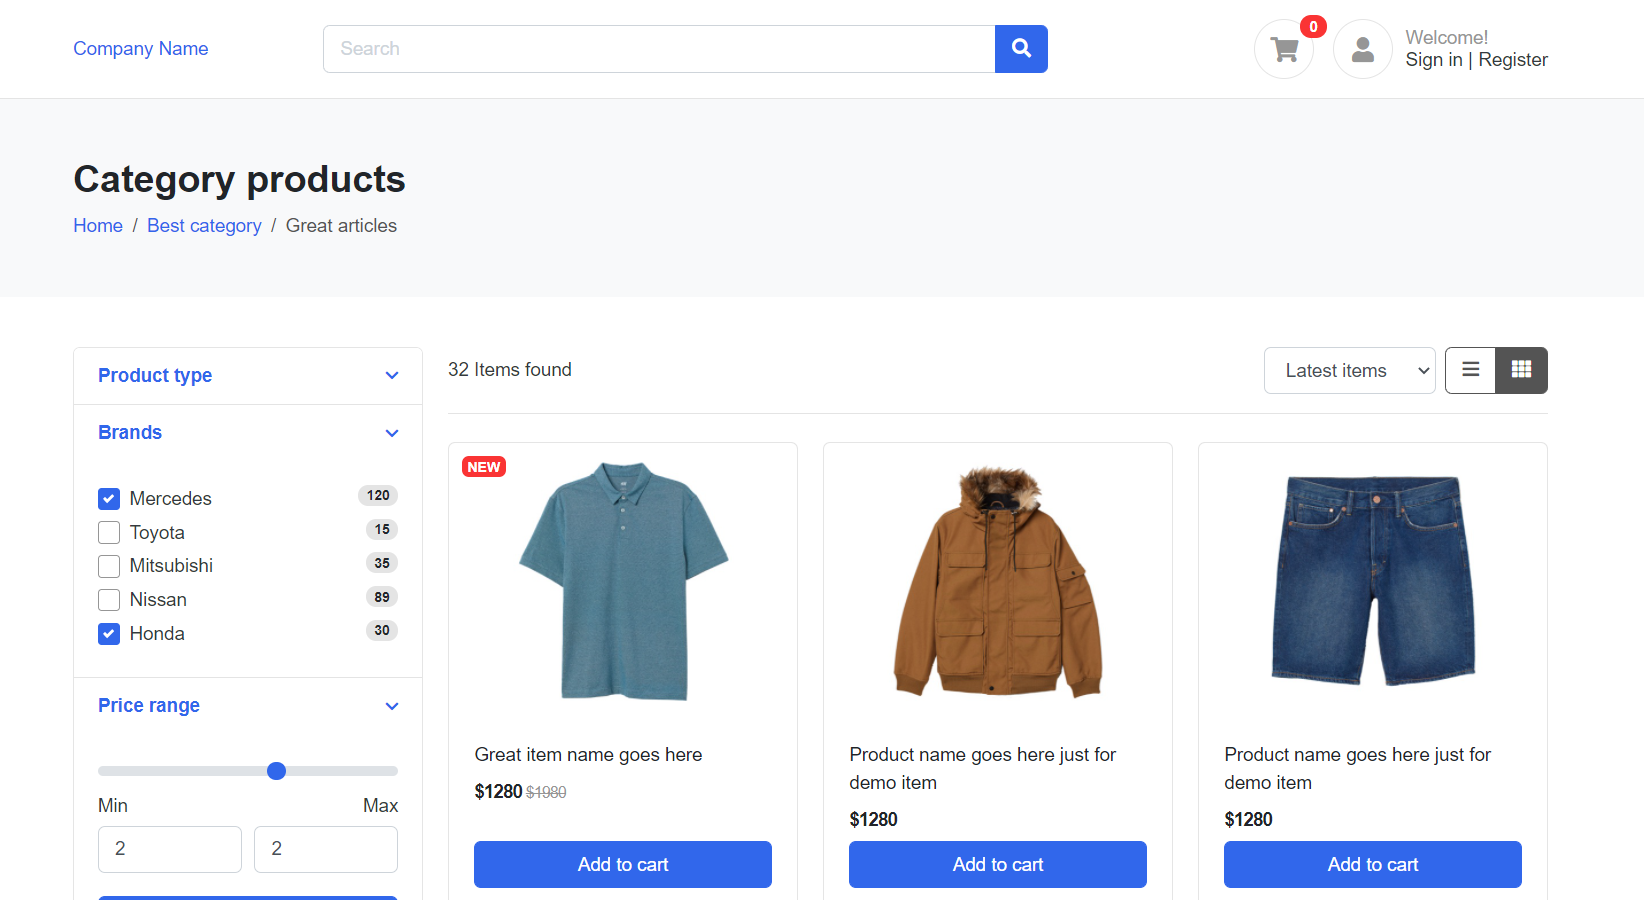 Angular 11 Ecommerce Template Free - Product Listing Page Grid View